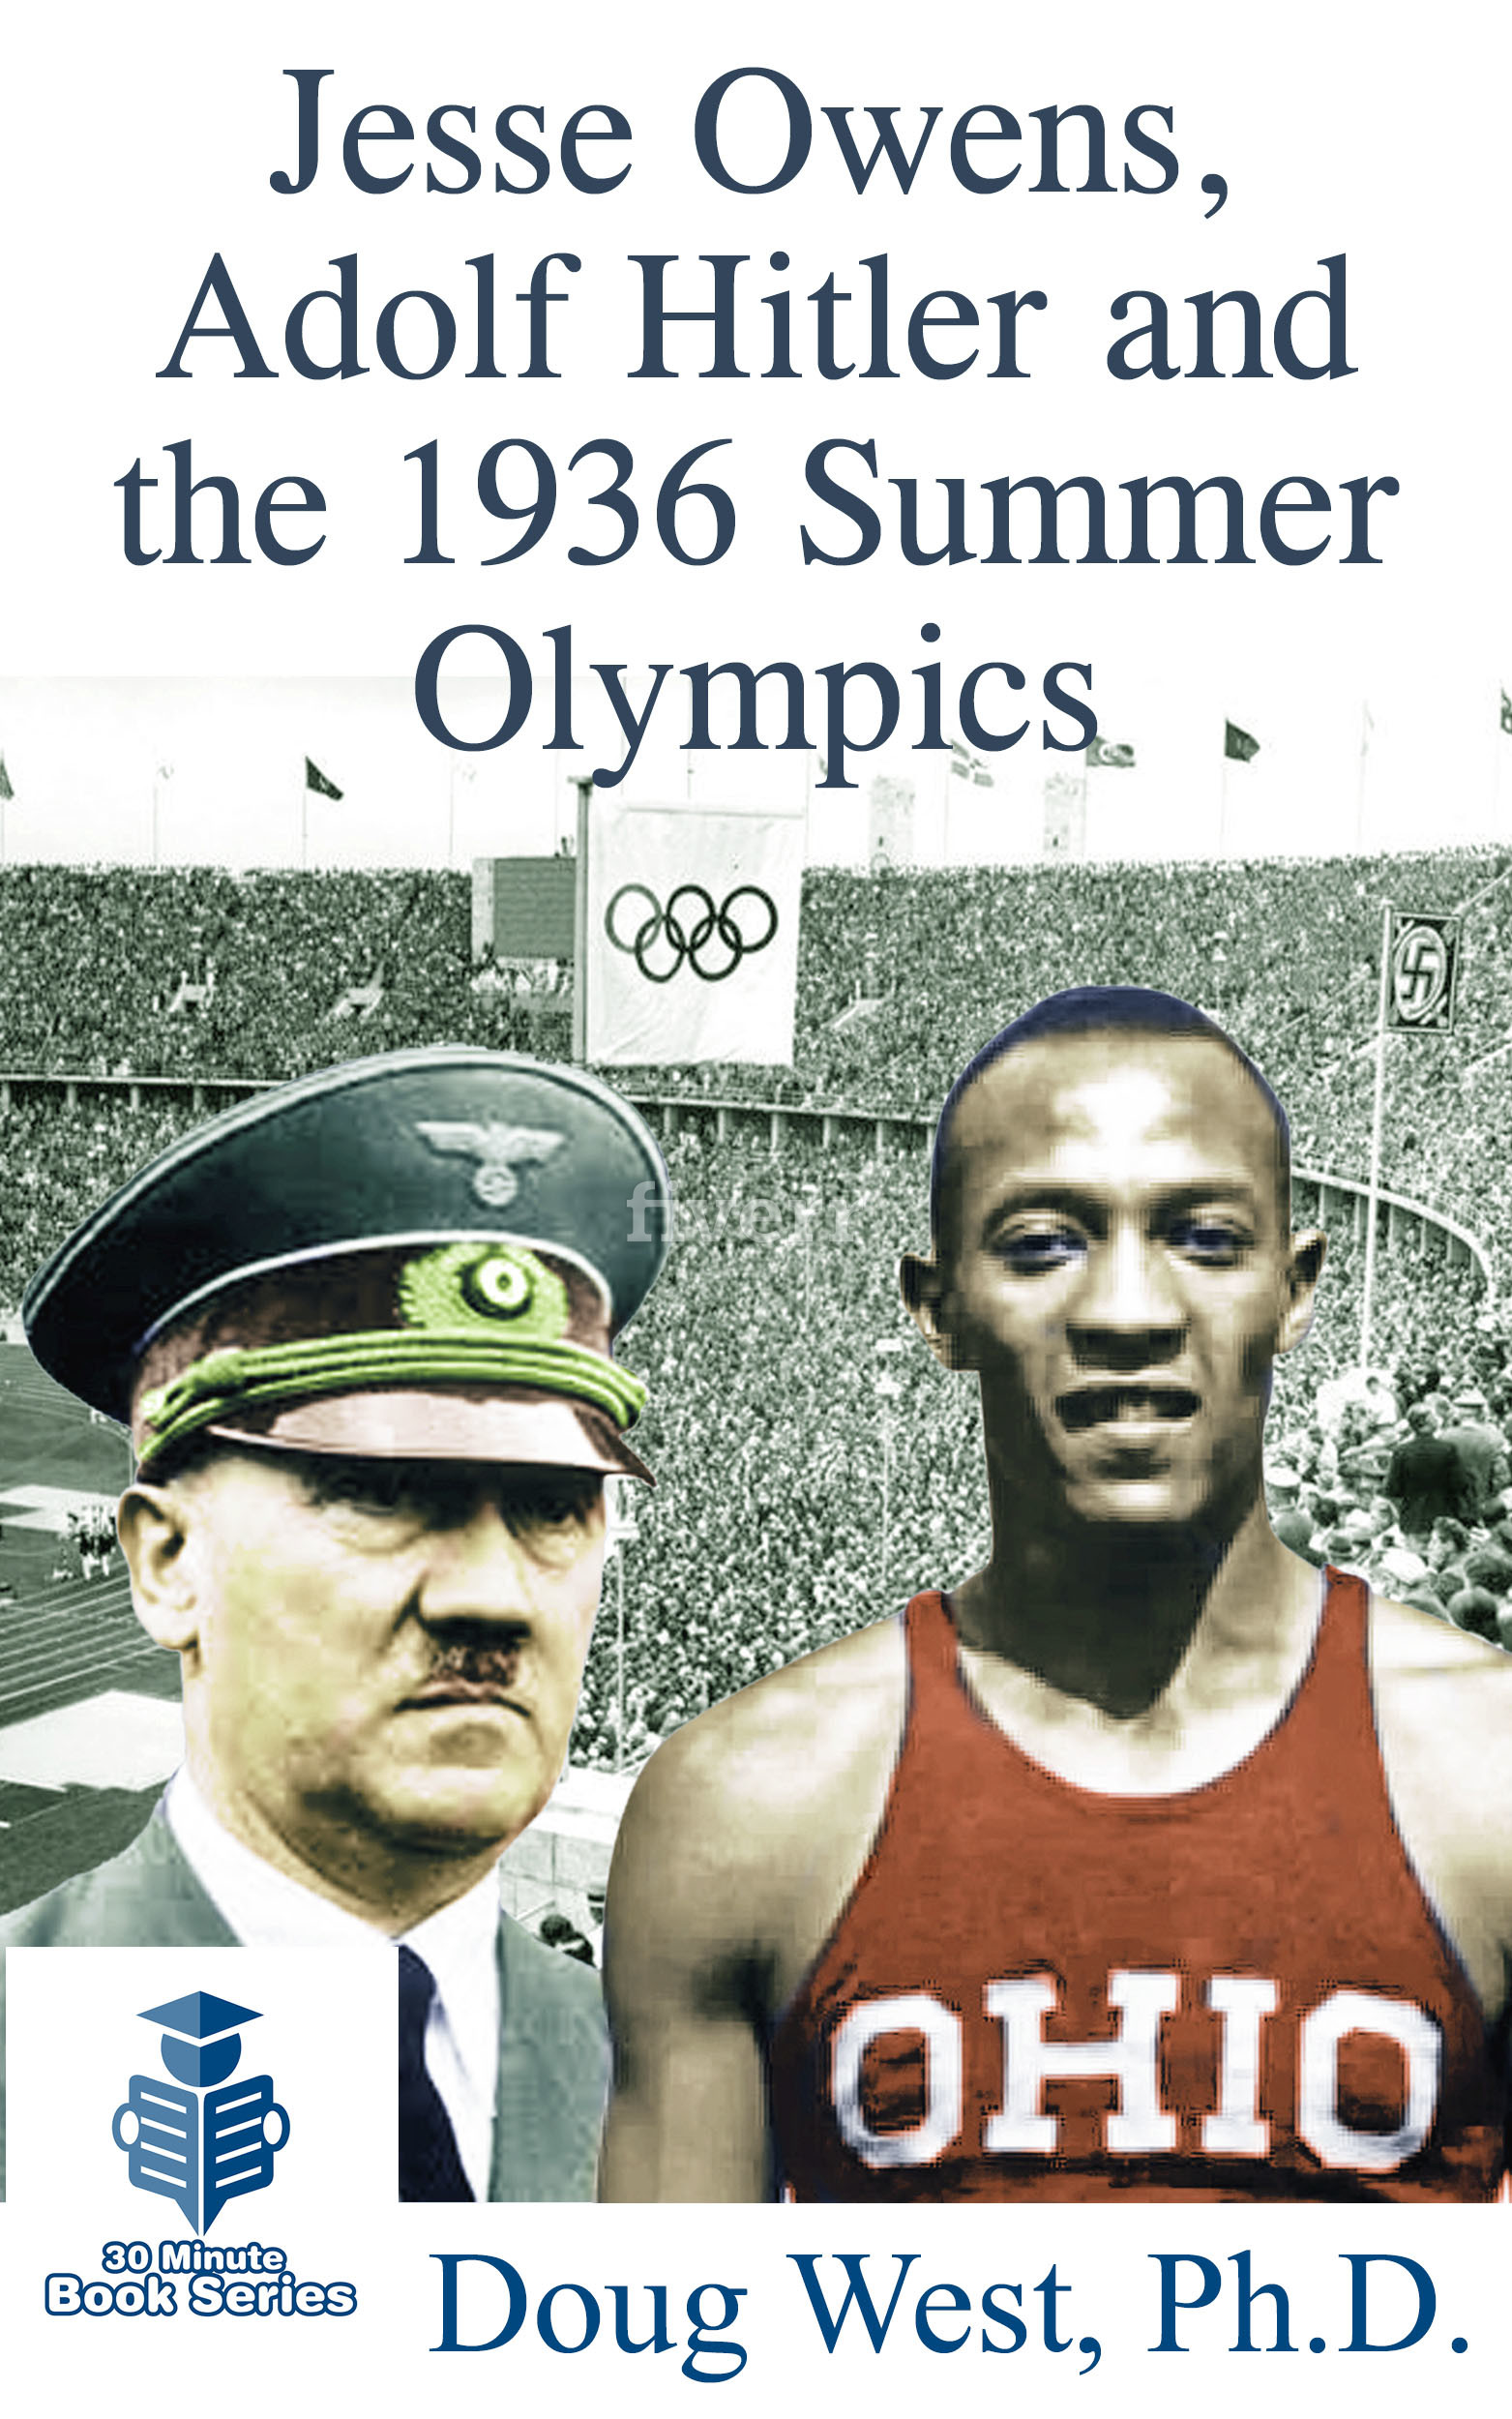 jesse owens and muhammad ali man making history